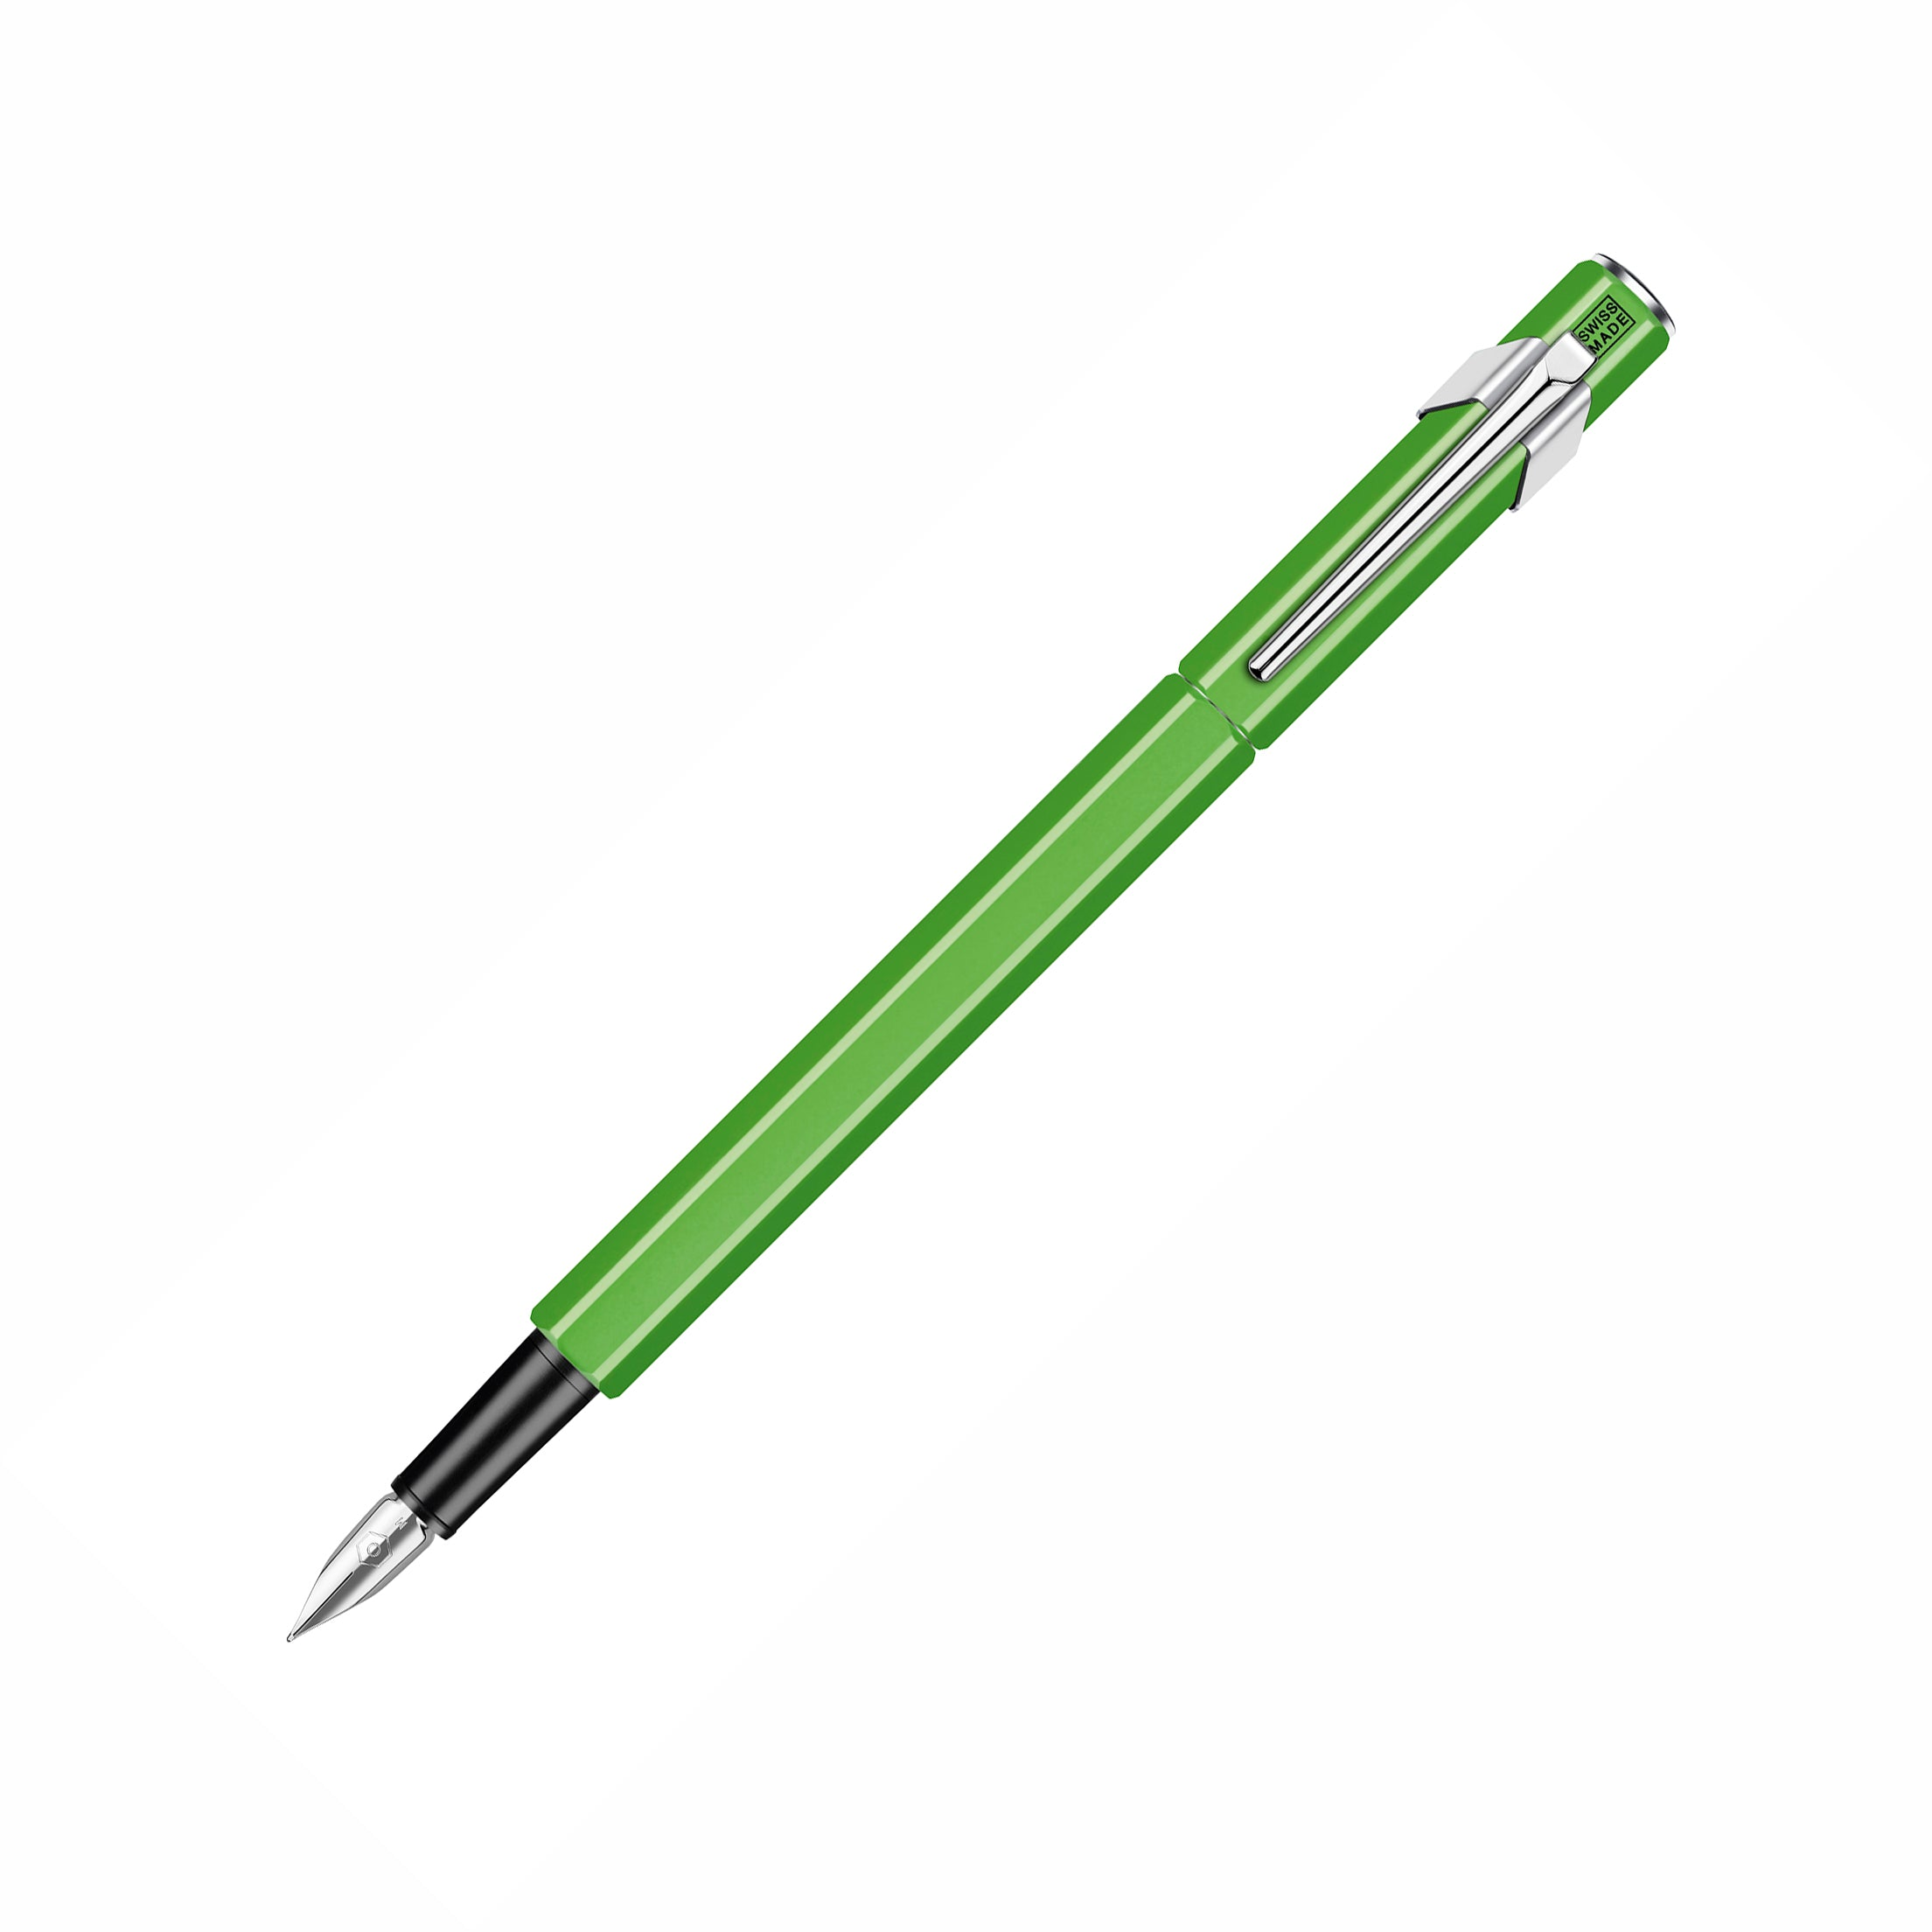 849 Fountain Pen - Medium Nib / Green